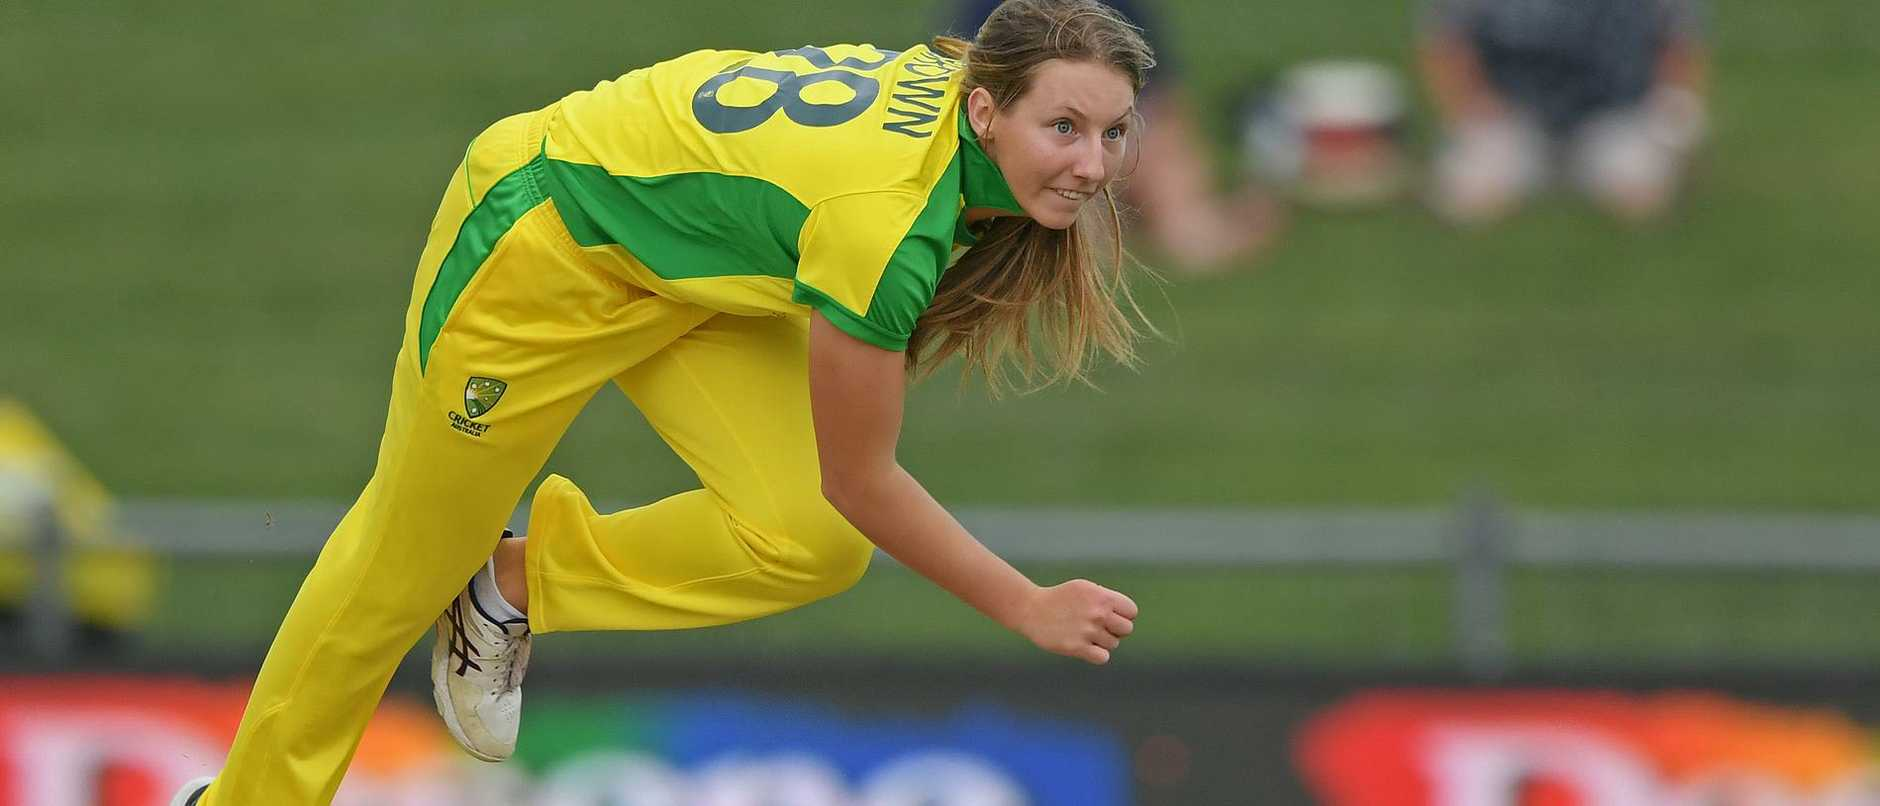 Australia are the world champions and ranked No 1 in T20 and 50-over cricket, and with new contracts in place, they could dominate for some time.